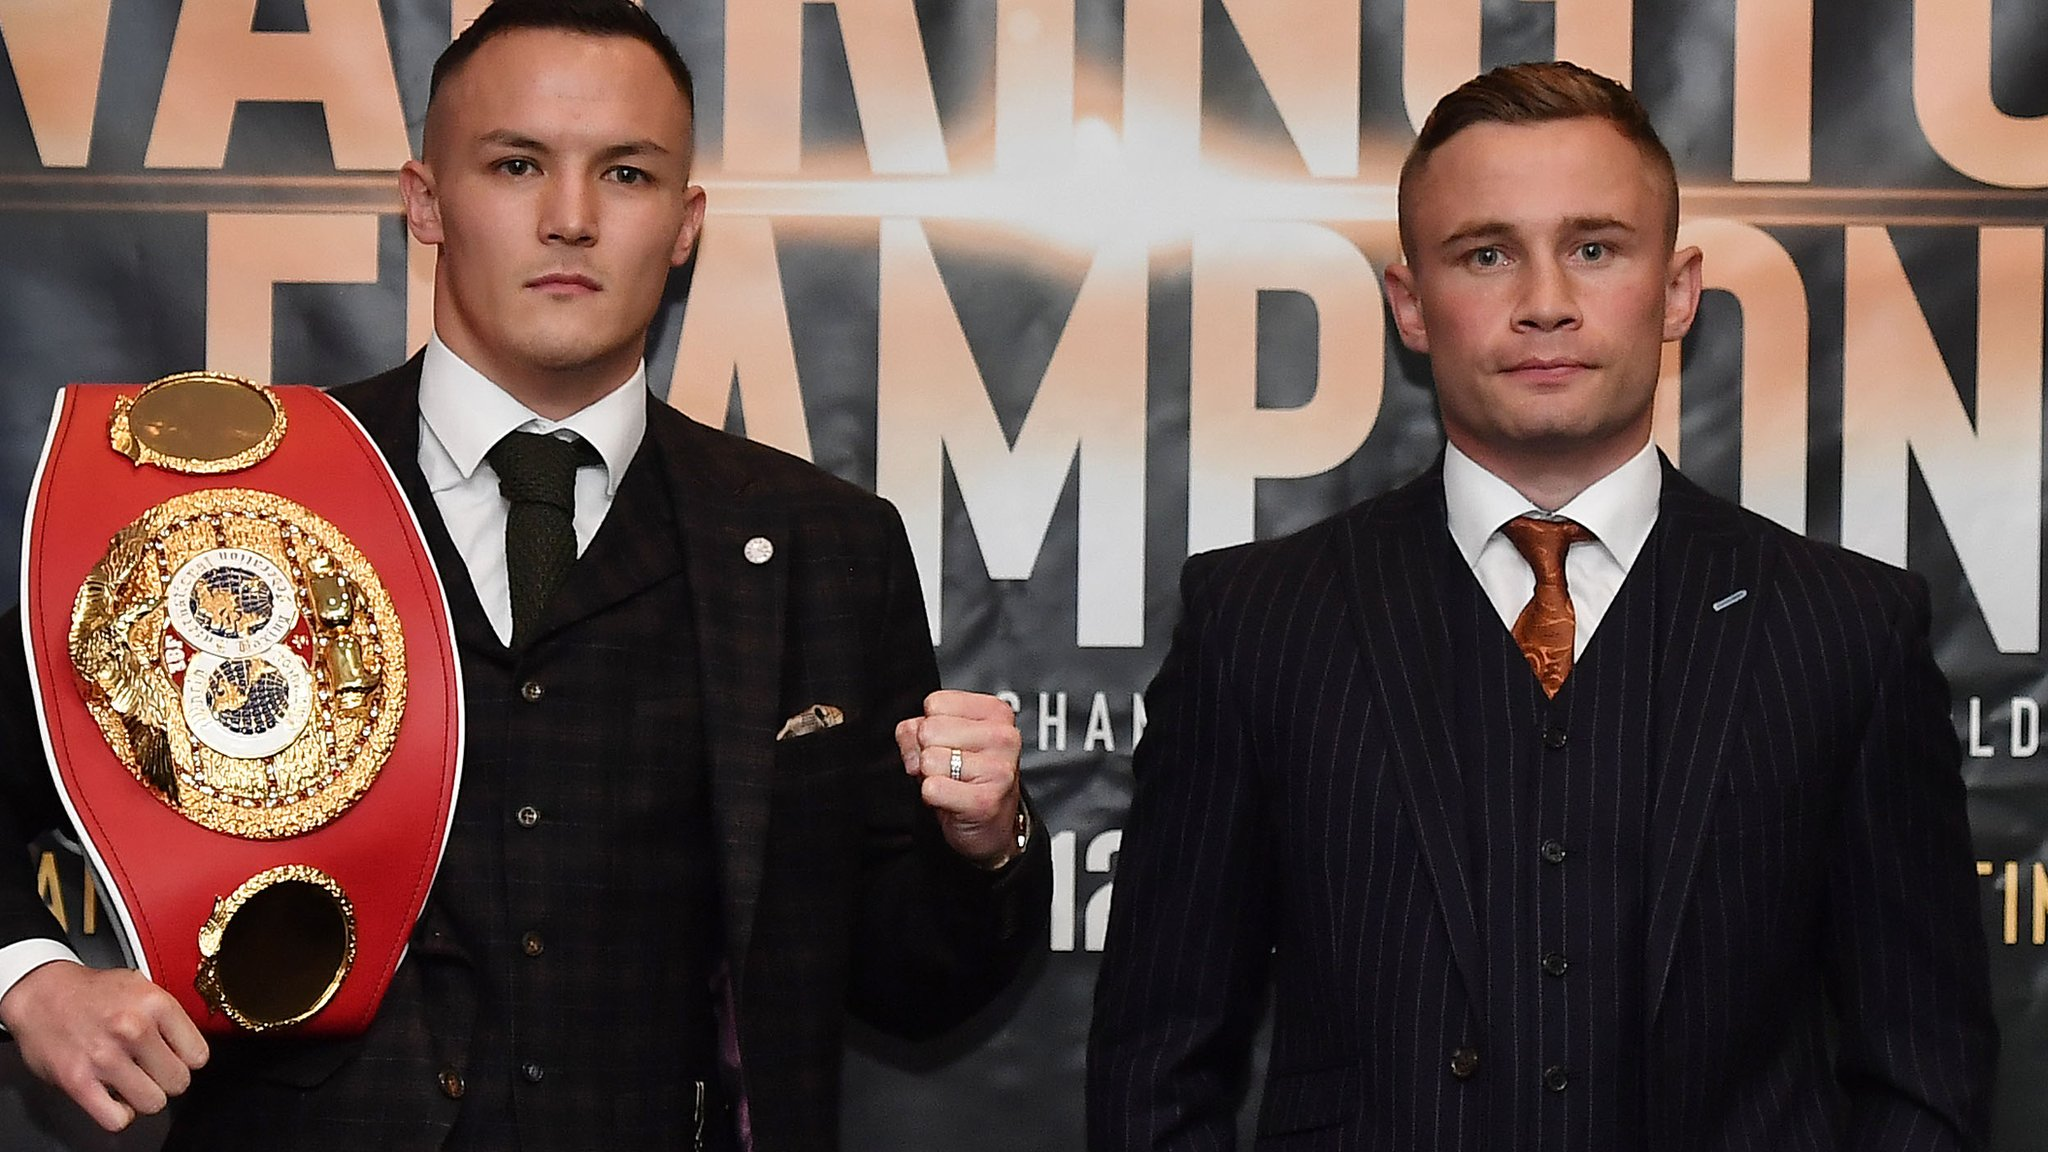 Warrington & Frampton unhappy with pay-per-view clash